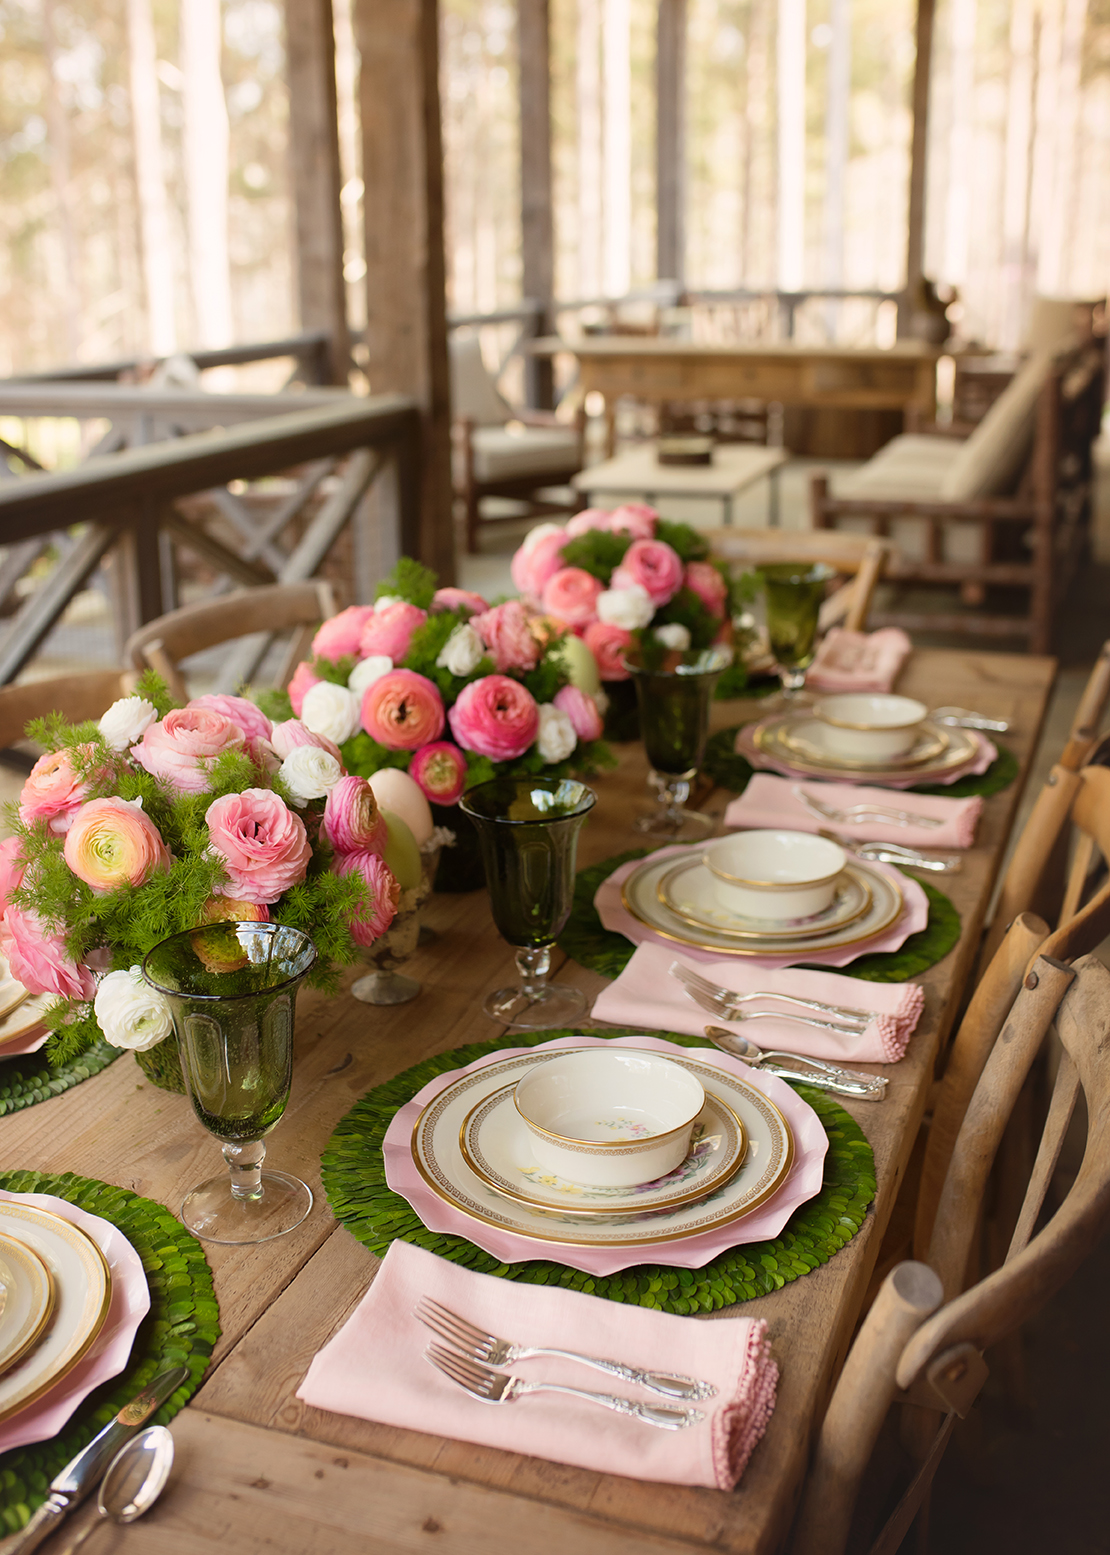 Easter Tablescape at the Farm | J Cathell